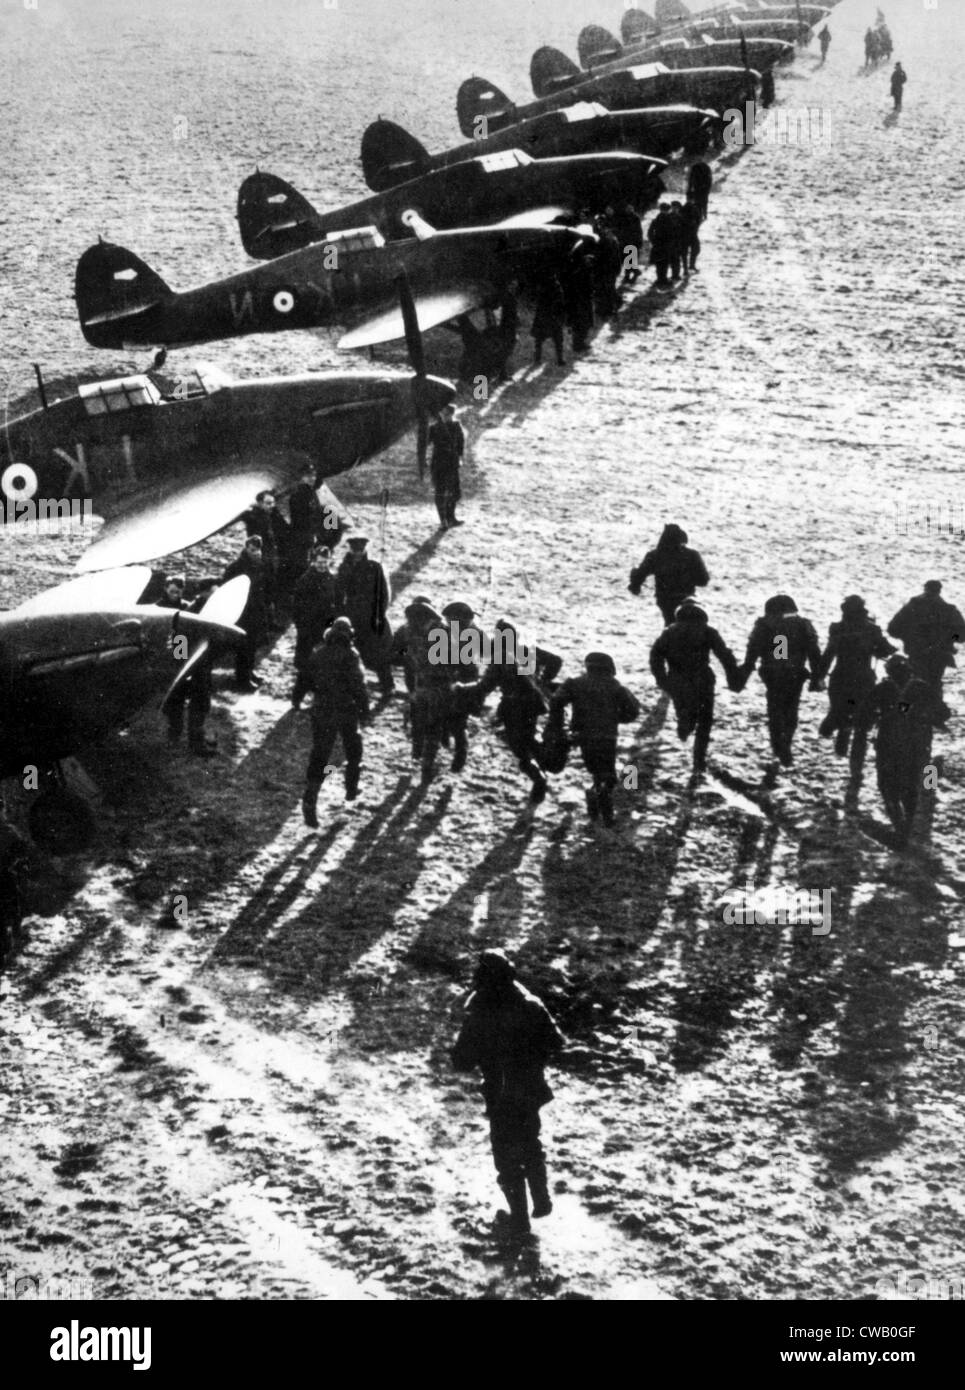 World War II, British Royal Air Force pilots running to their fighter planes during the Battle of Britain, 1940. - Stock Image